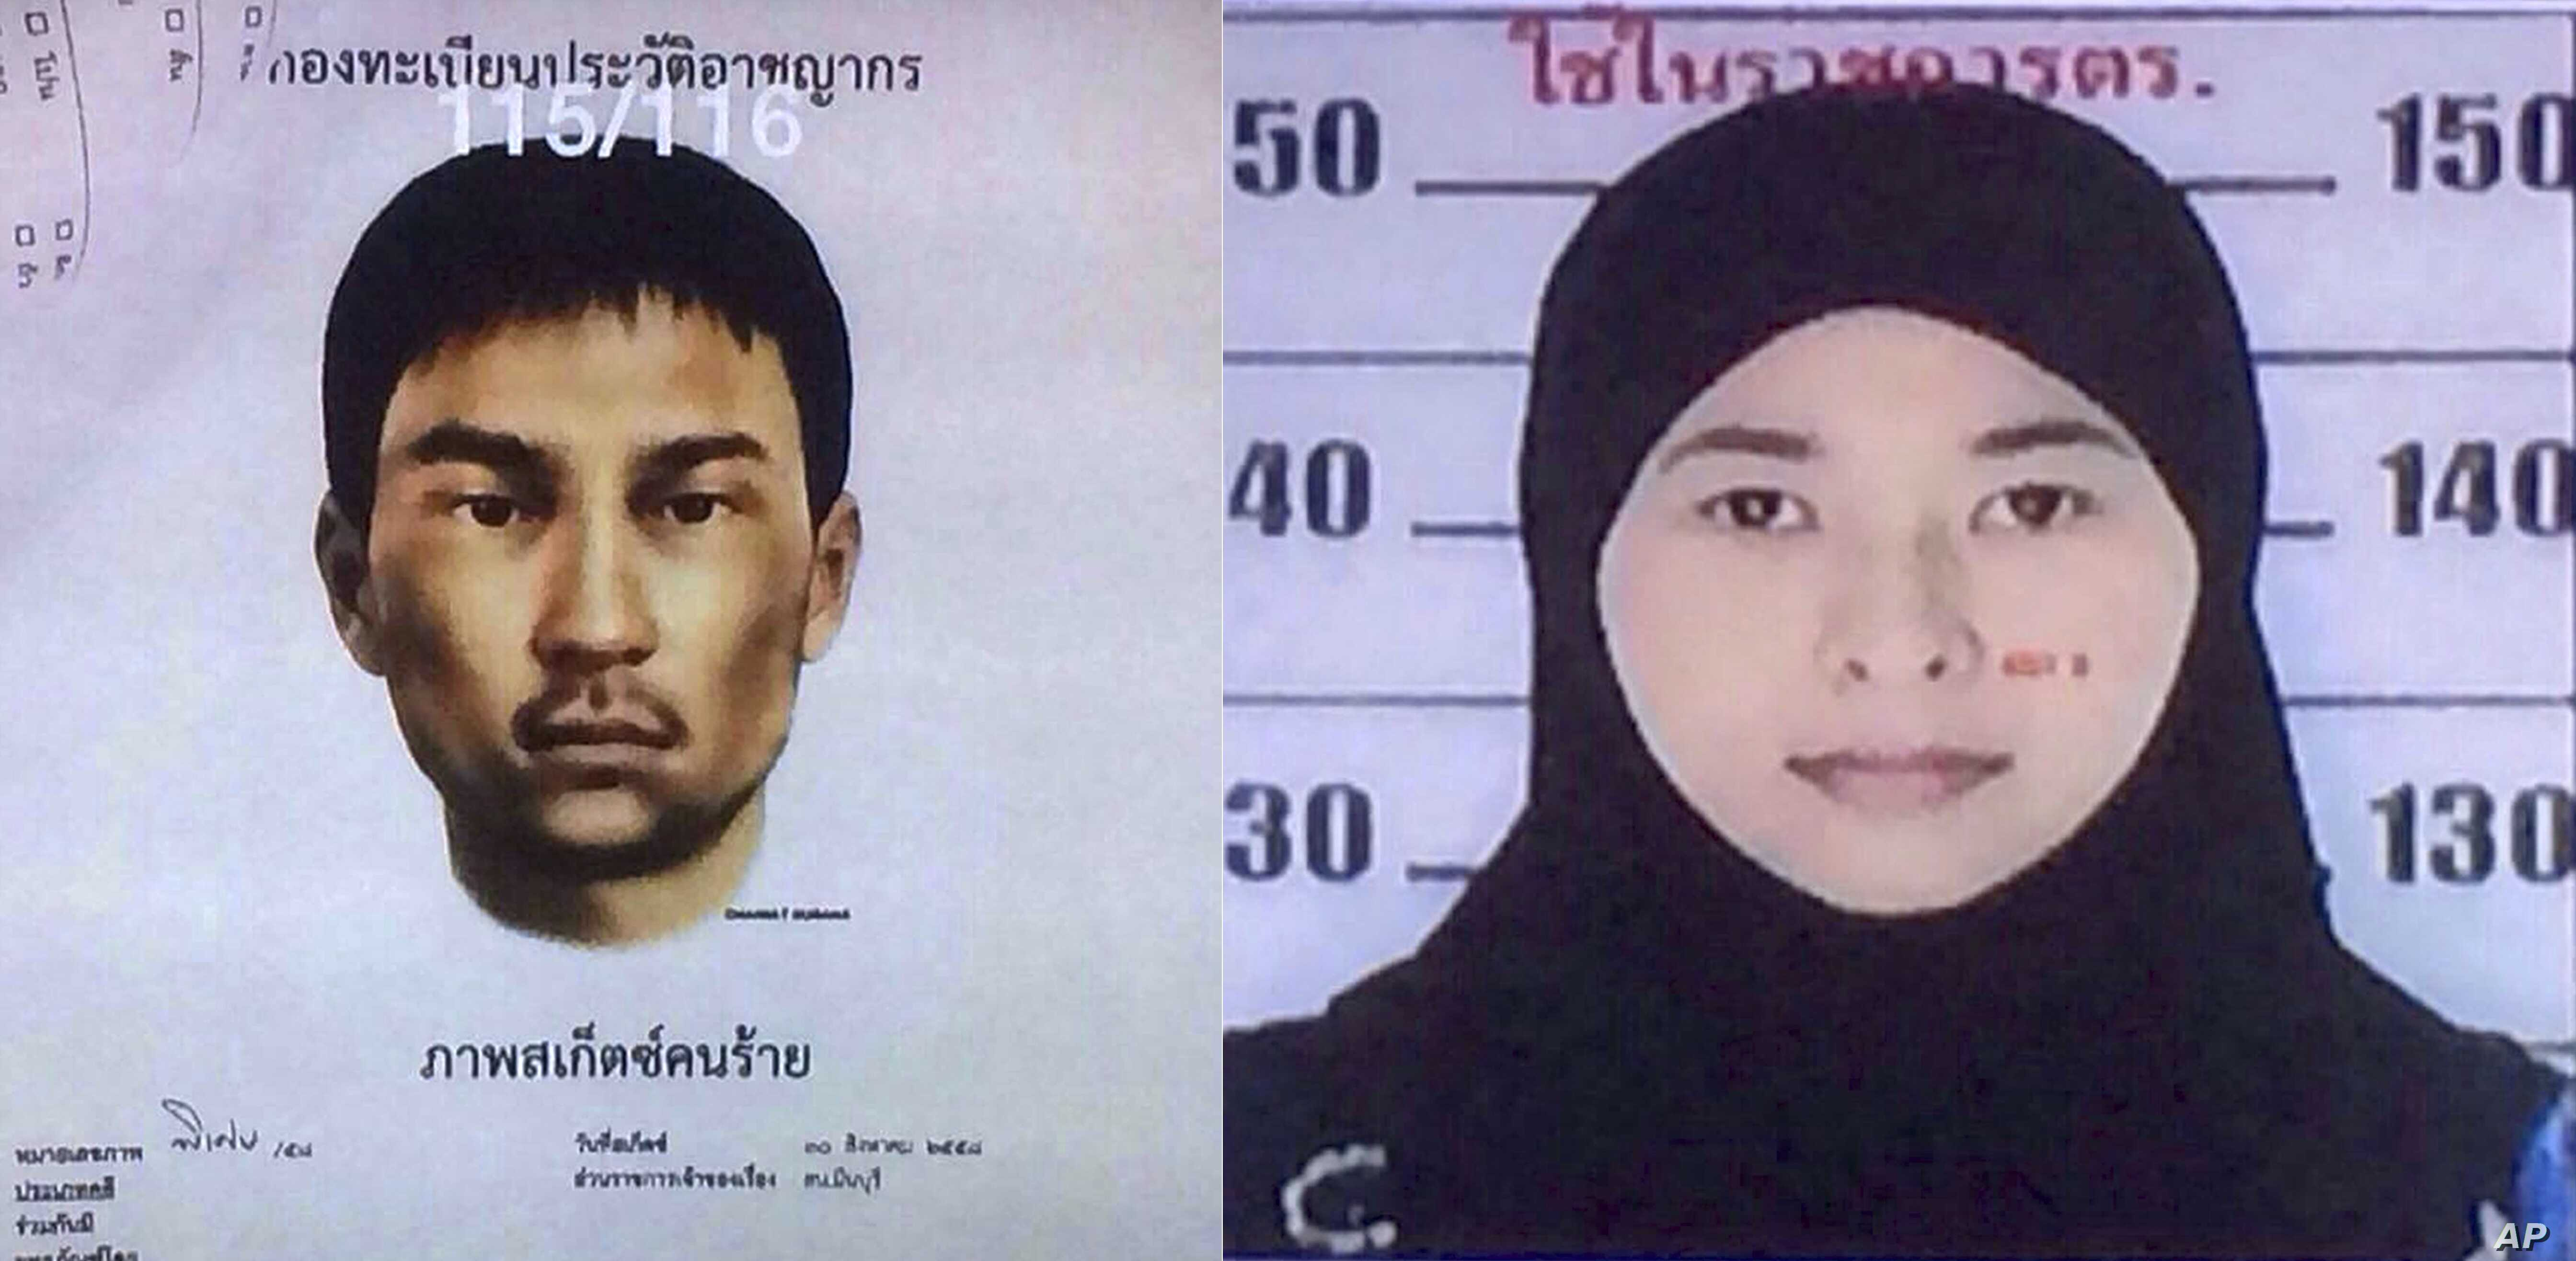 Images released Monday, Aug. 31, 2015, by the National Council for Peace and Order (NCPO) shows a sketch of an unidentified man who police say was living in the second apartment, which was raided by authorities in Min Buri, in Bangkok's outskirts, an...